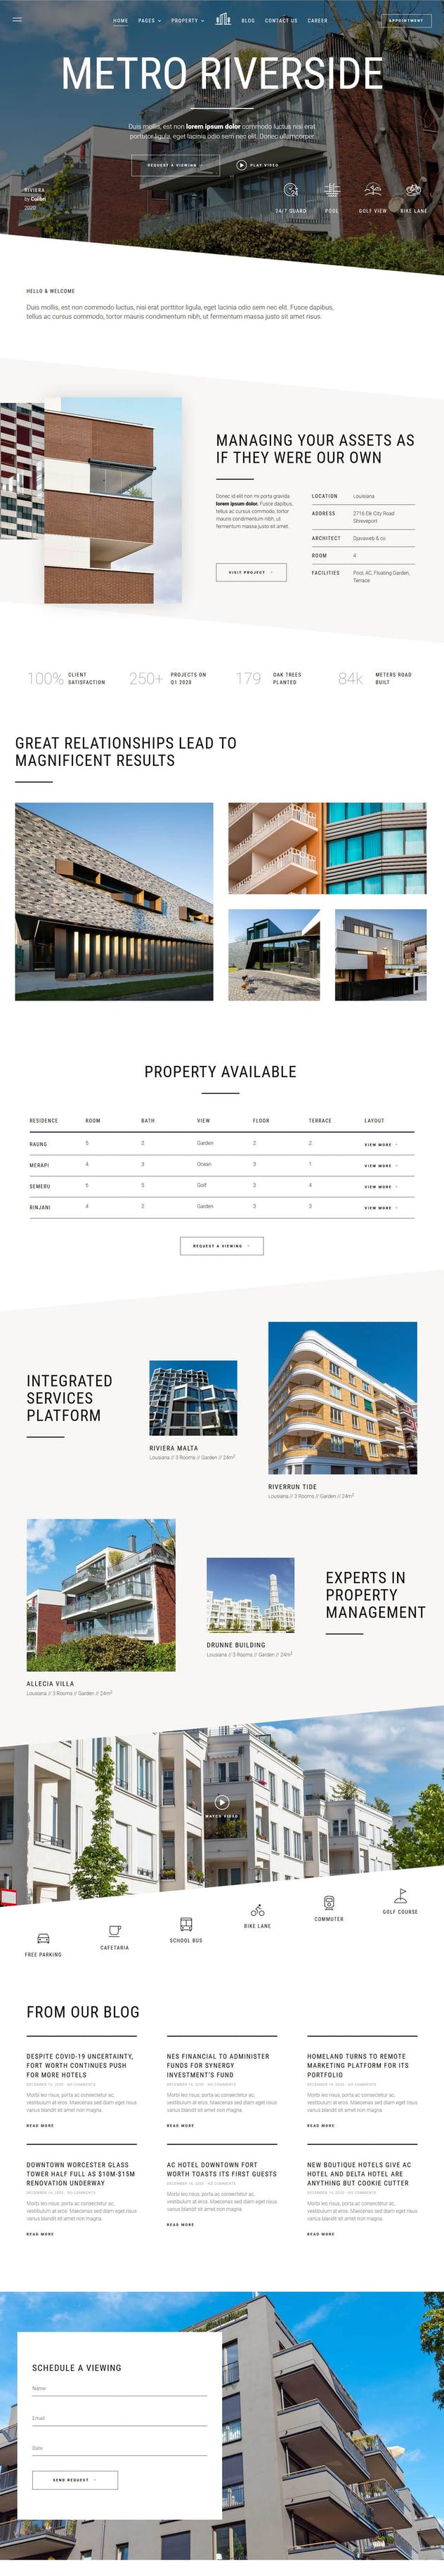 Homeland — Real Estate & Property Elementor Template Kit - product preview 10